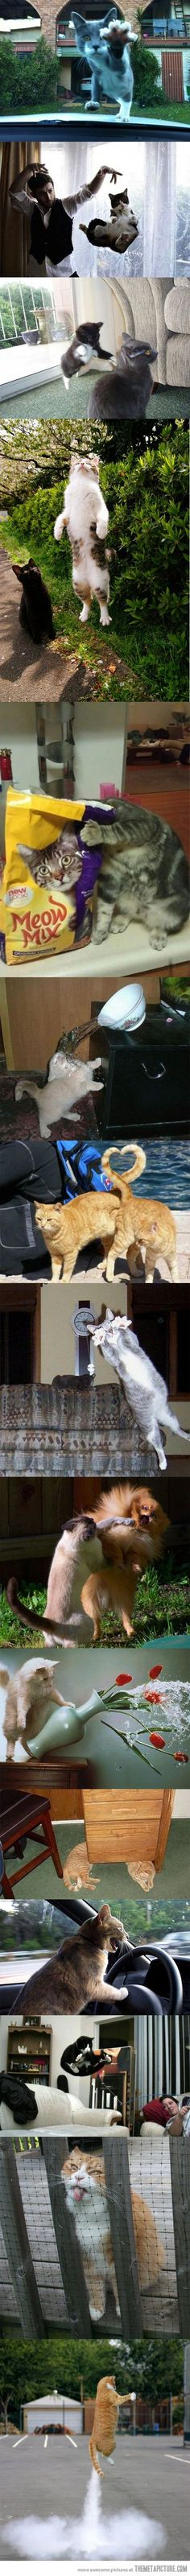 15 perfectly timed cat photos: